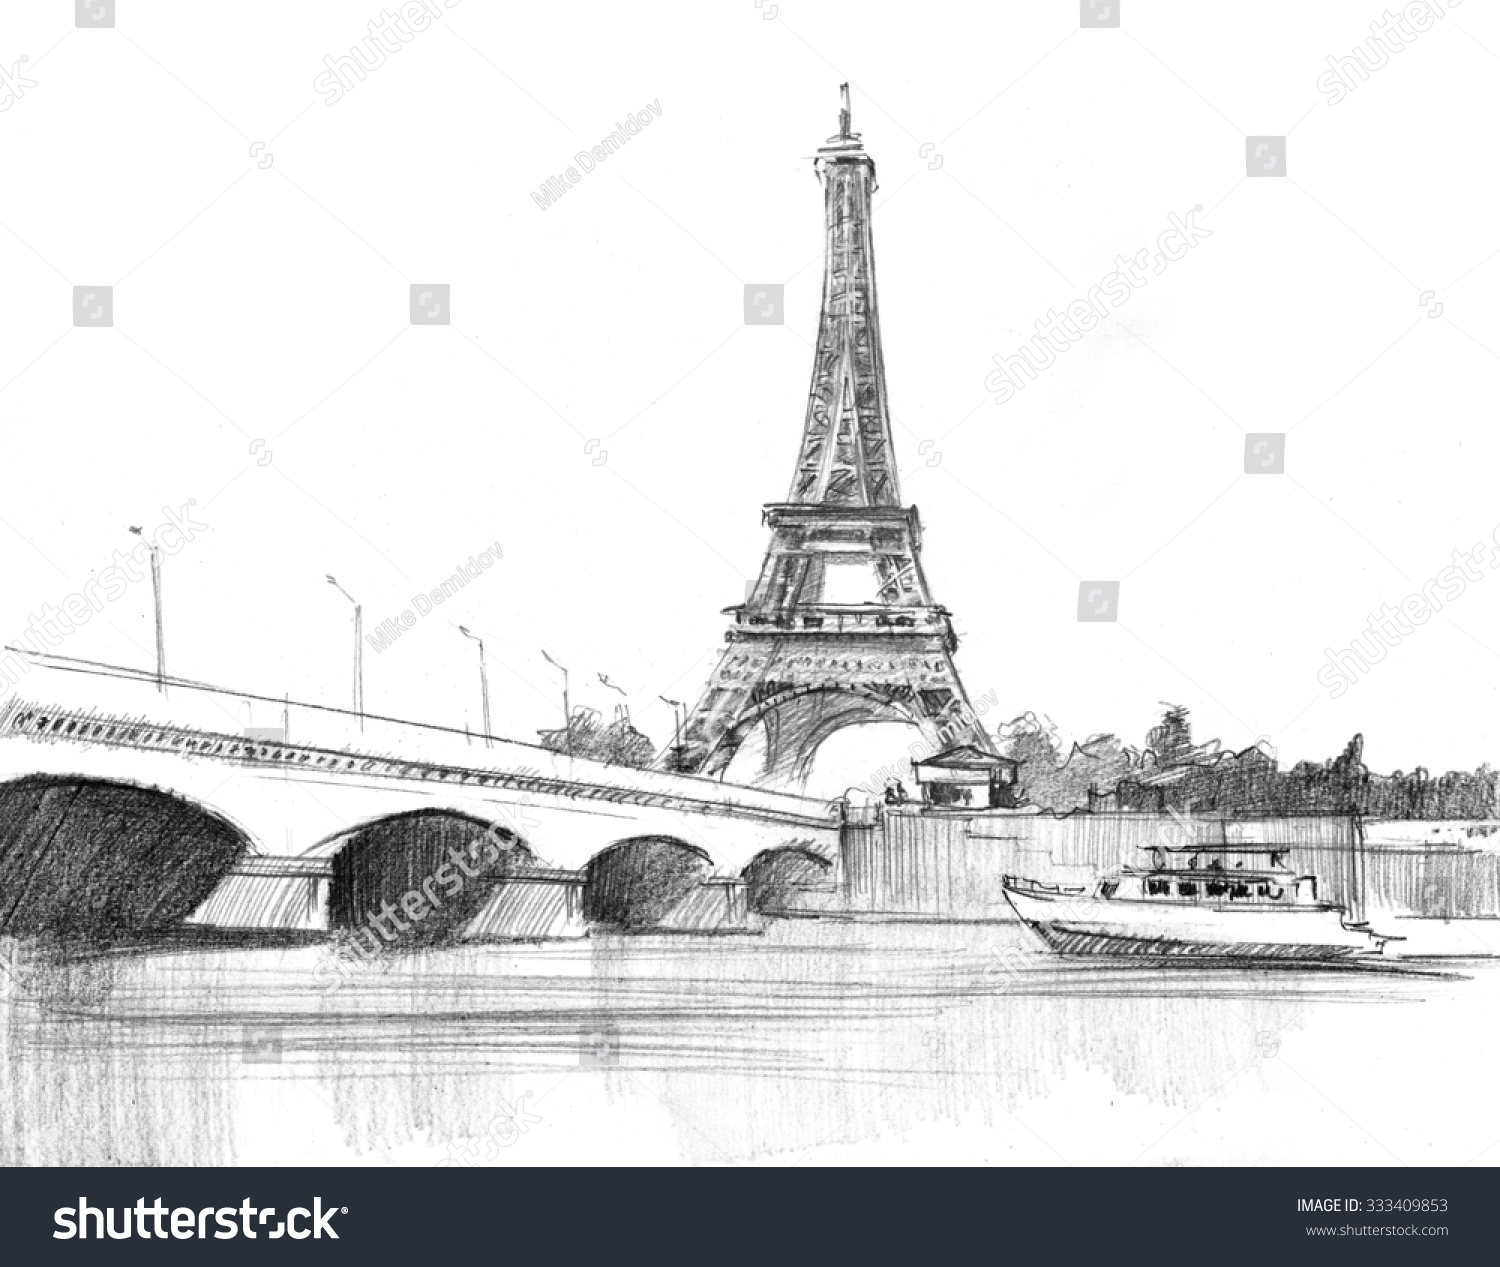 Pencil drawing of the cathedral of eiffel tower in paris against bridge